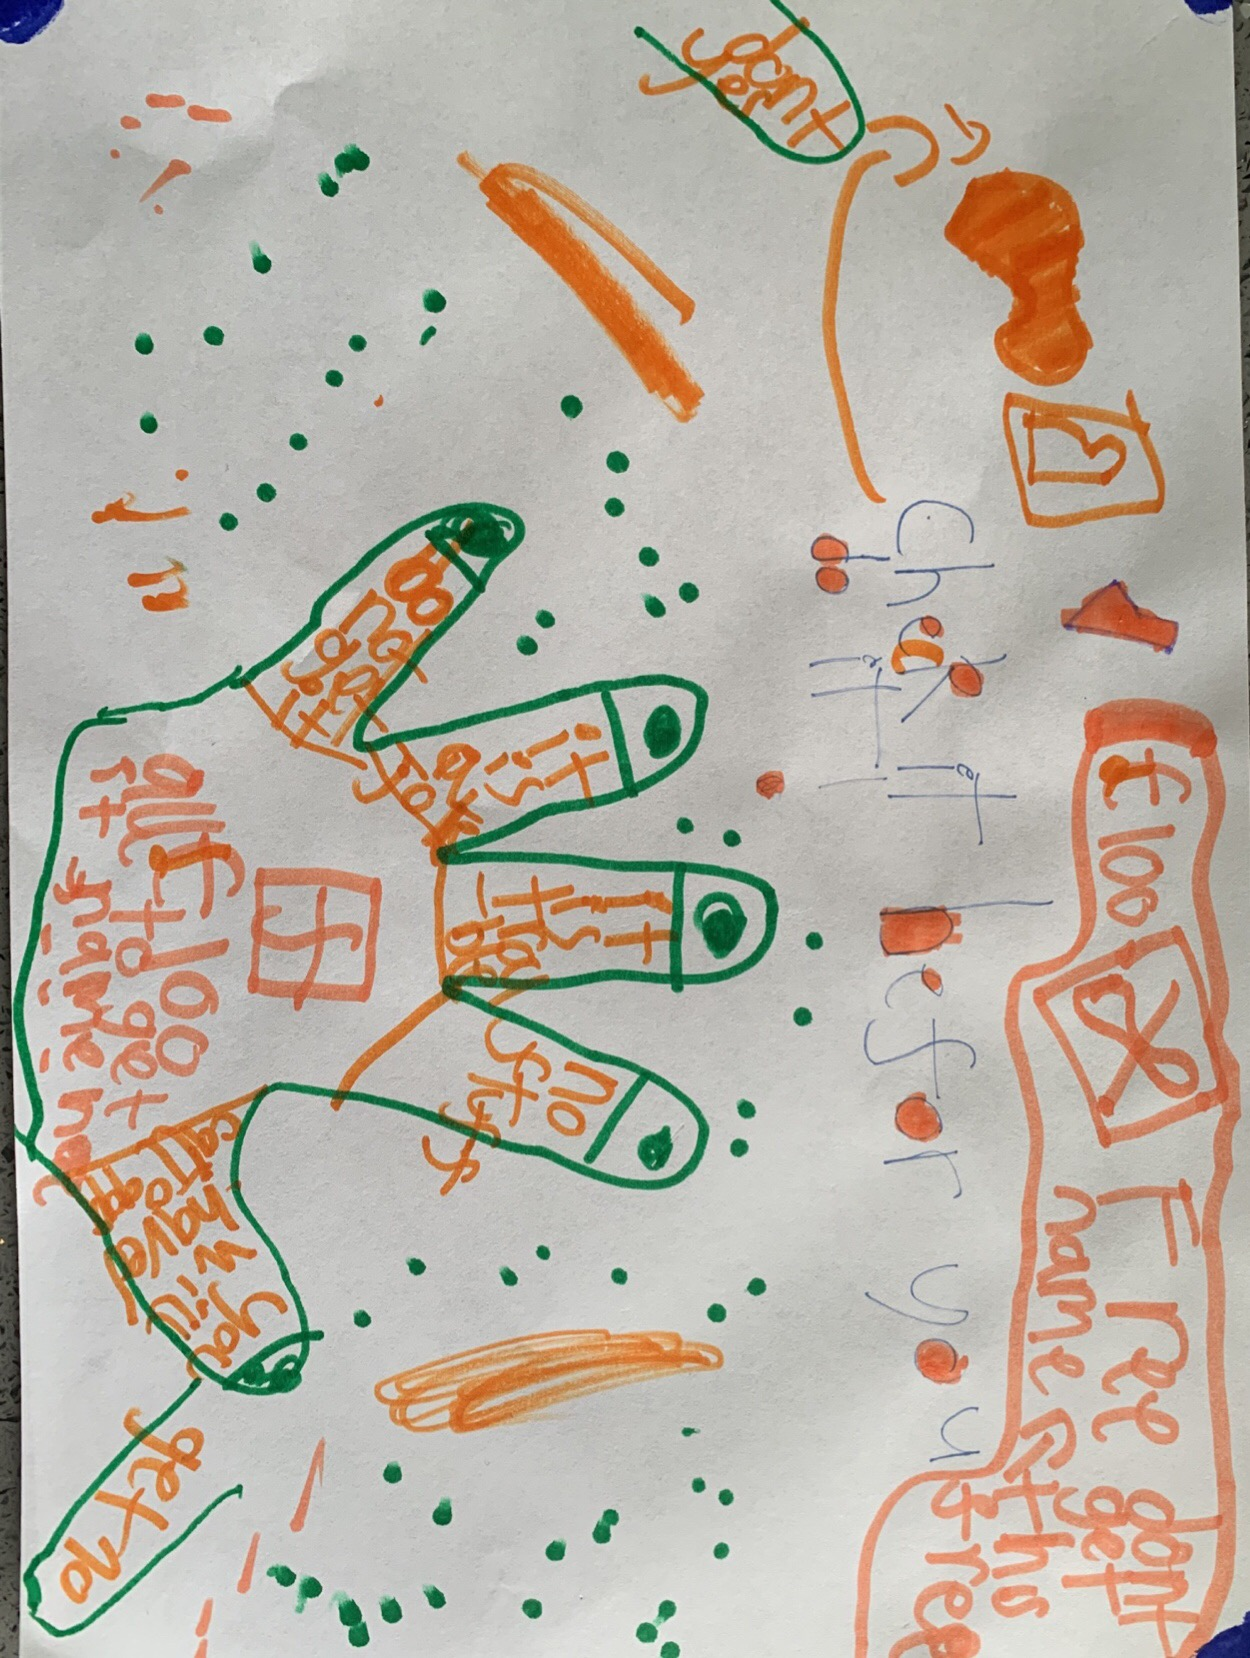 Tilly's brilliant poster!